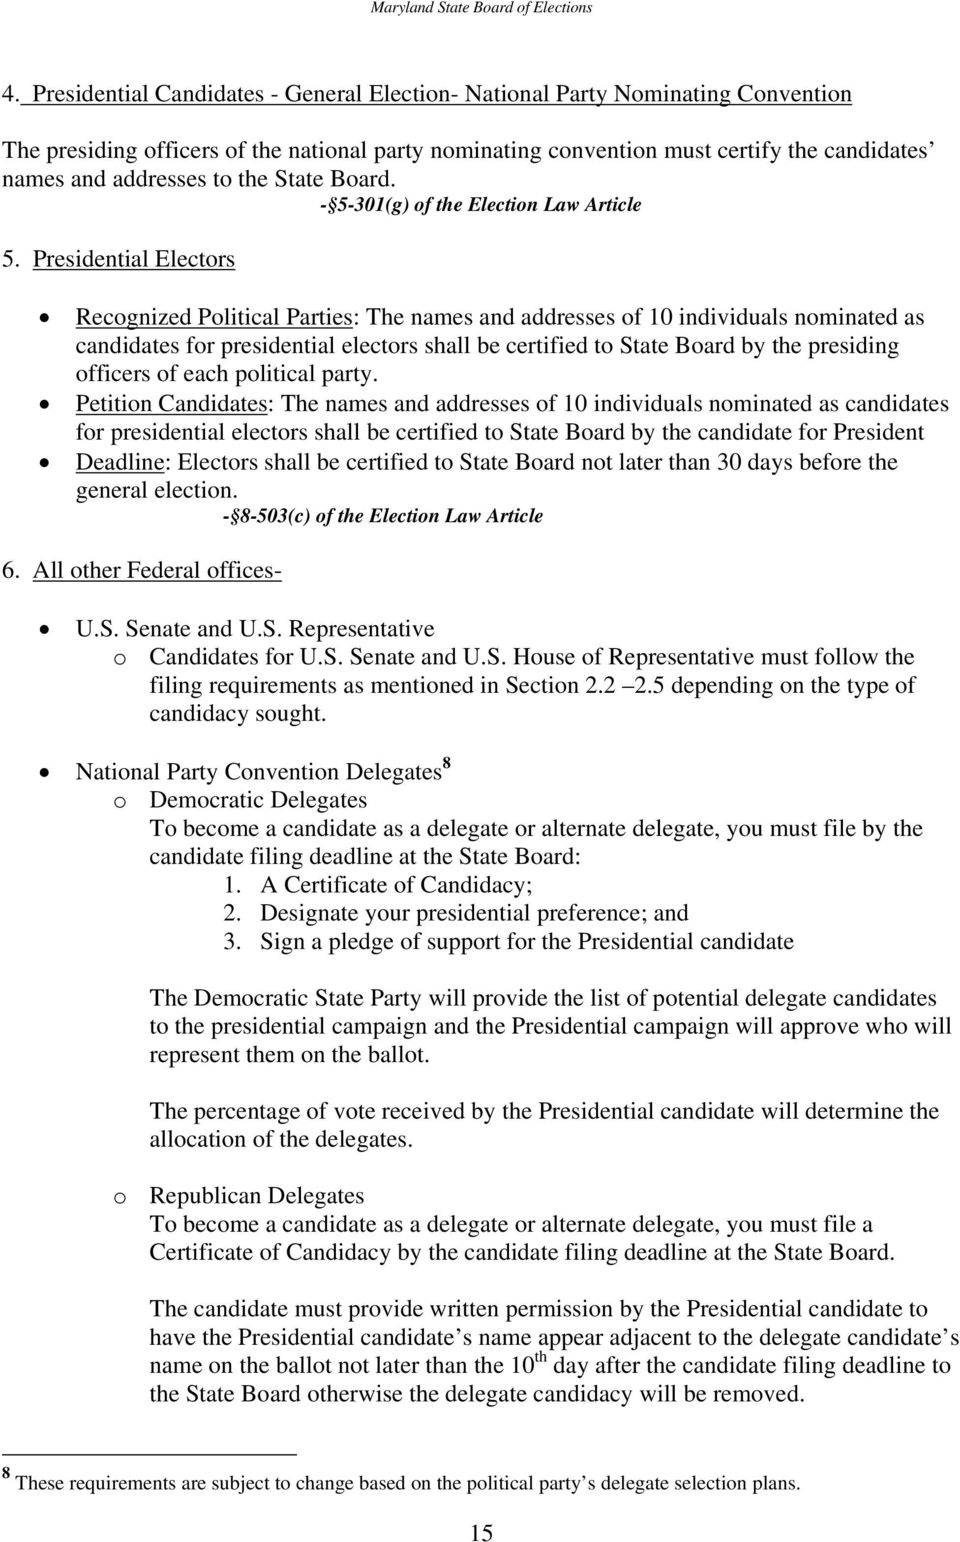 Presidential Electors Recognized Political Parties: The names and addresses of 10 individuals nominated as candidates for presidential electors shall be certified to State Board by the presiding